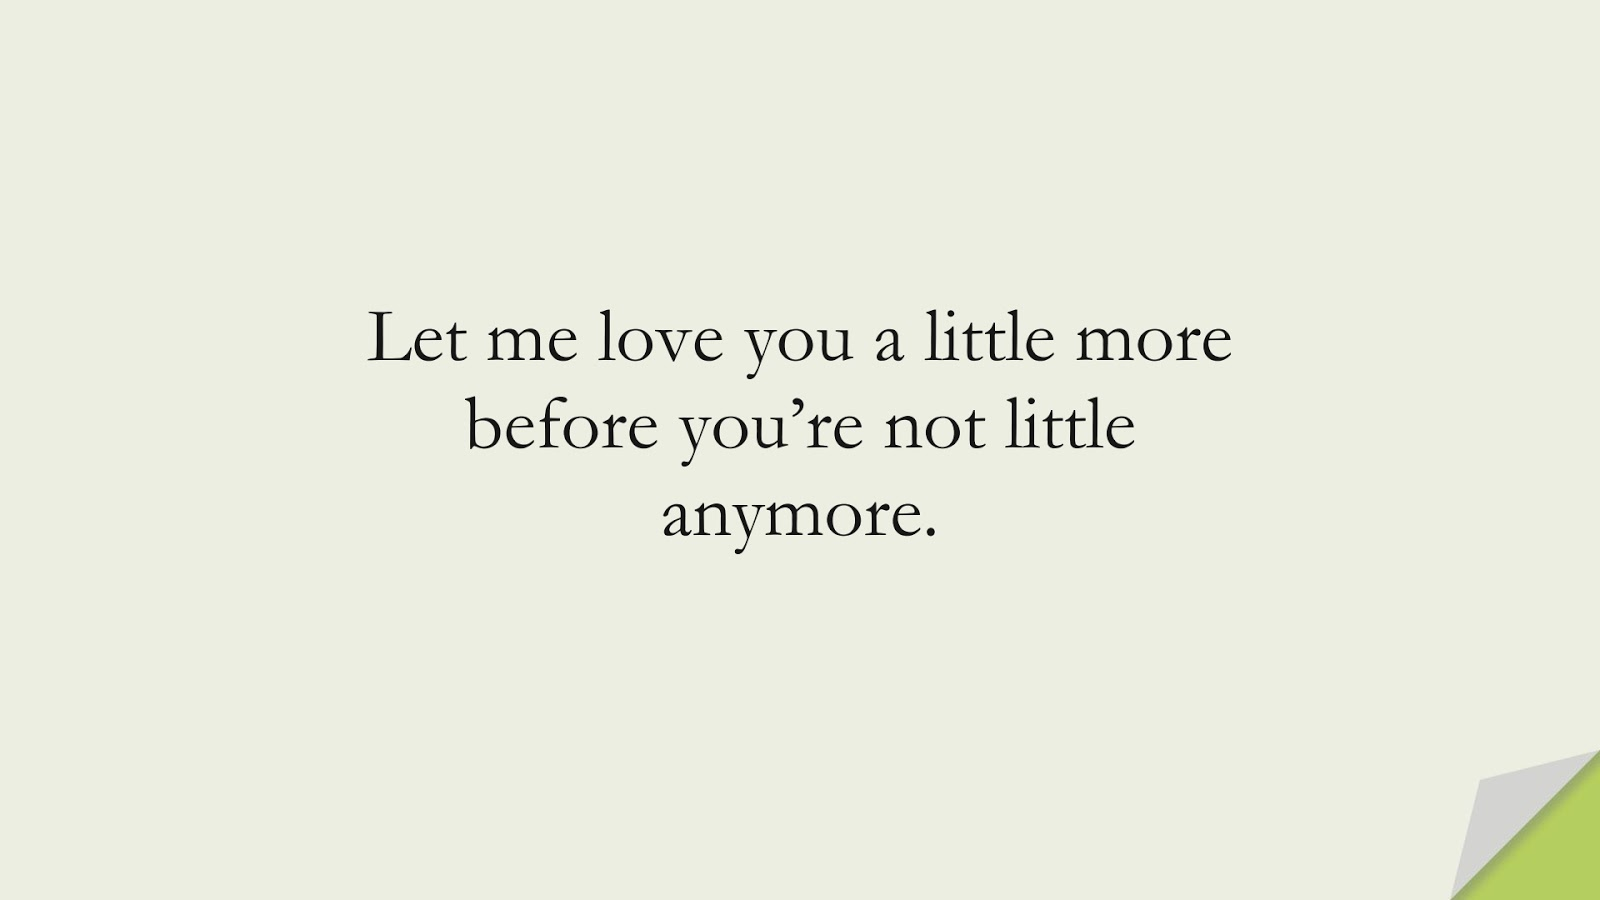 Let me love you a little more before you're not little anymore.FALSE